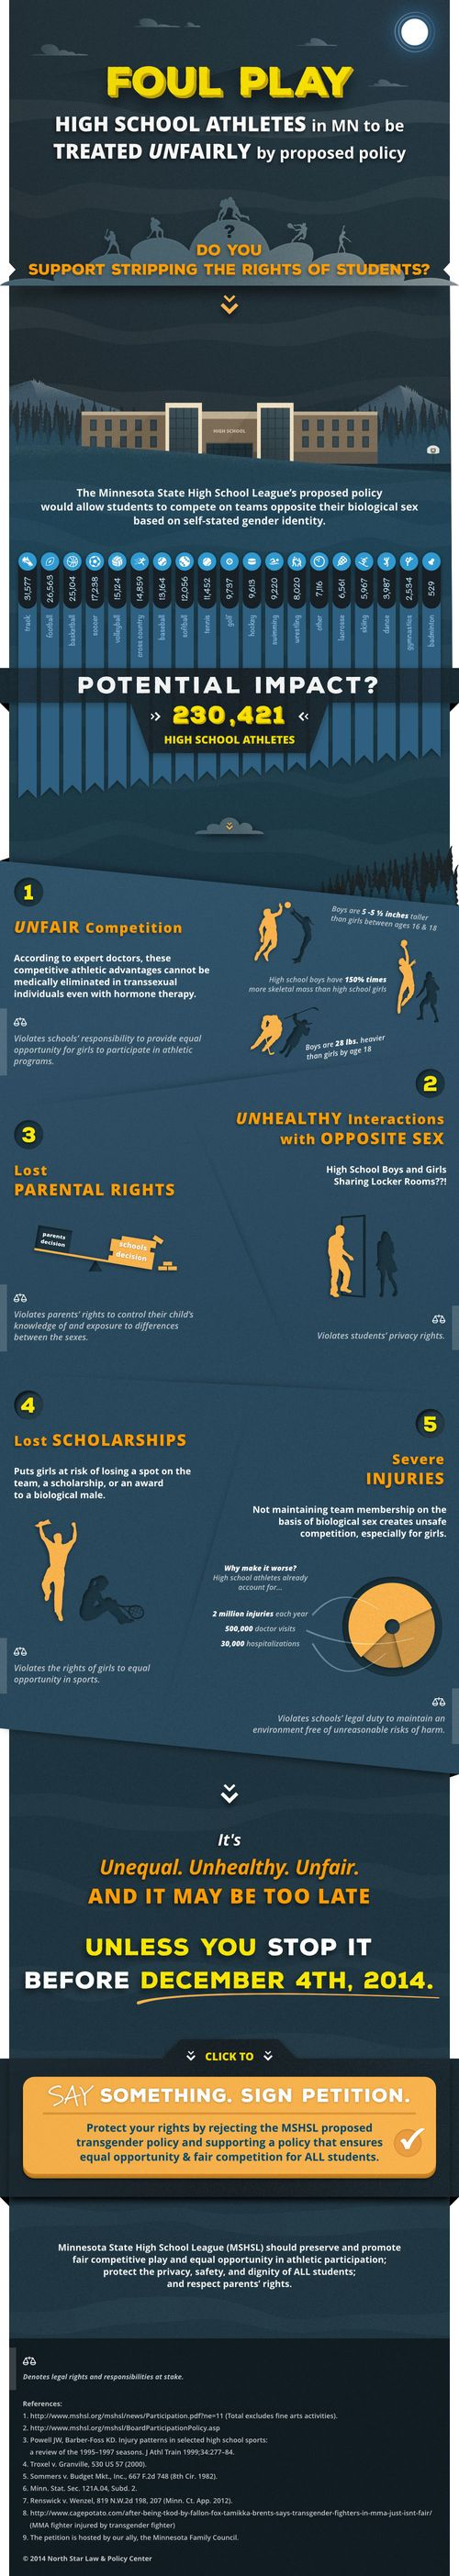 Foul-play-mshsl-proposed-transgender-policy-infographic